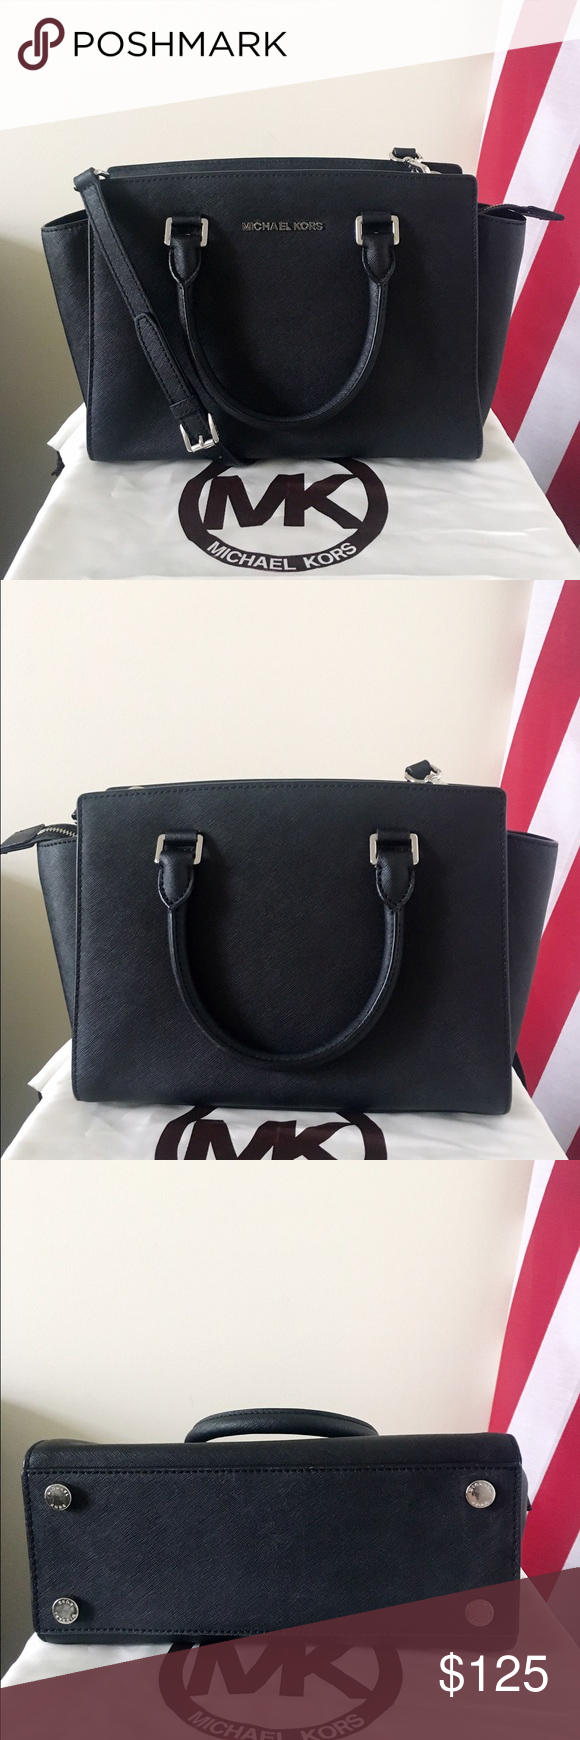 Michael kors Black Selma Satchel/ Crossbody Medium A great purse, goes well very everything. Black Saffiano leather and silver tone hardware. Lightly used. Authentic. Shows minor wear on the bottom feet, other than that, in really good condition. Measurement: 12*8*5 inch. Dust bag is included. Michael Kors Bags Satchels